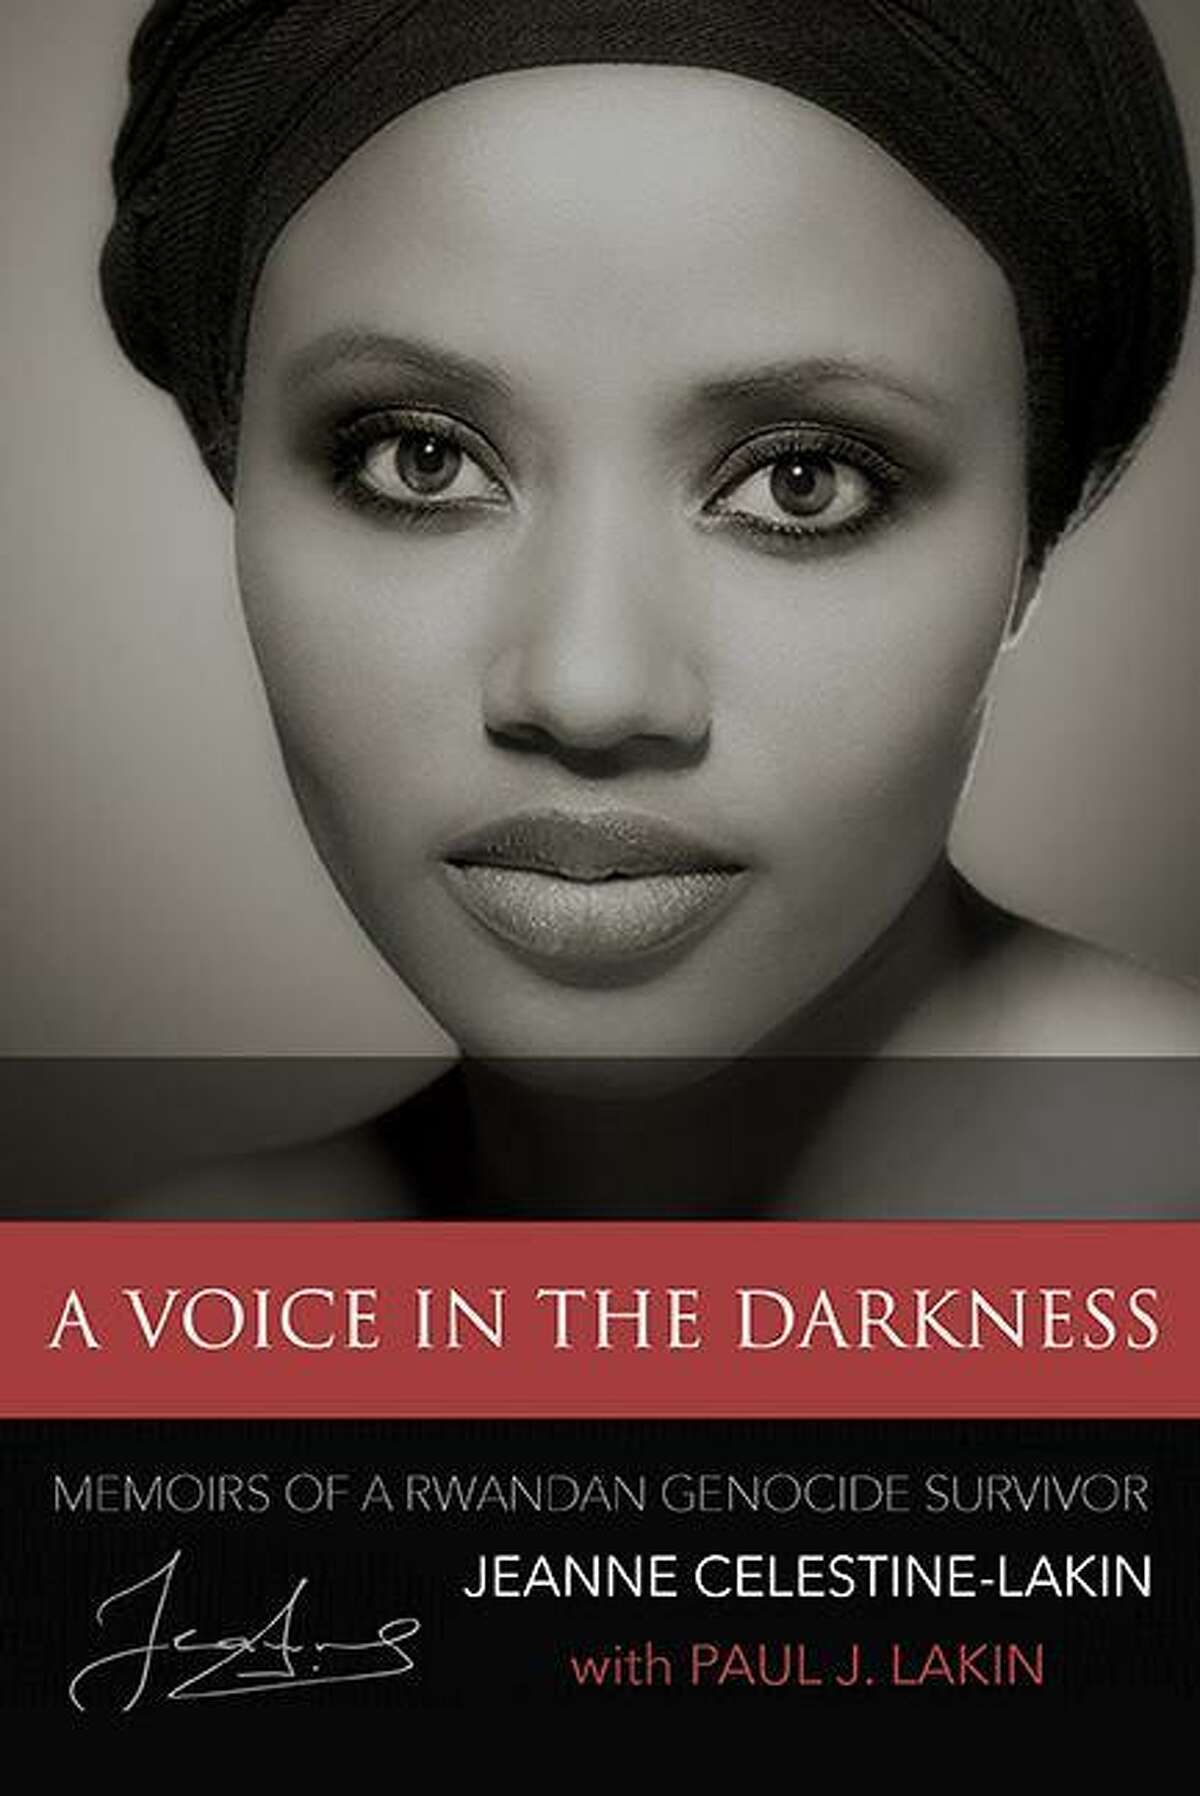 Jeanne Celestine Lakin wrote a memoir titled A Voice in the Darkness, which describes her experiences as a child during the Rwandan Genocide in the 1990s.